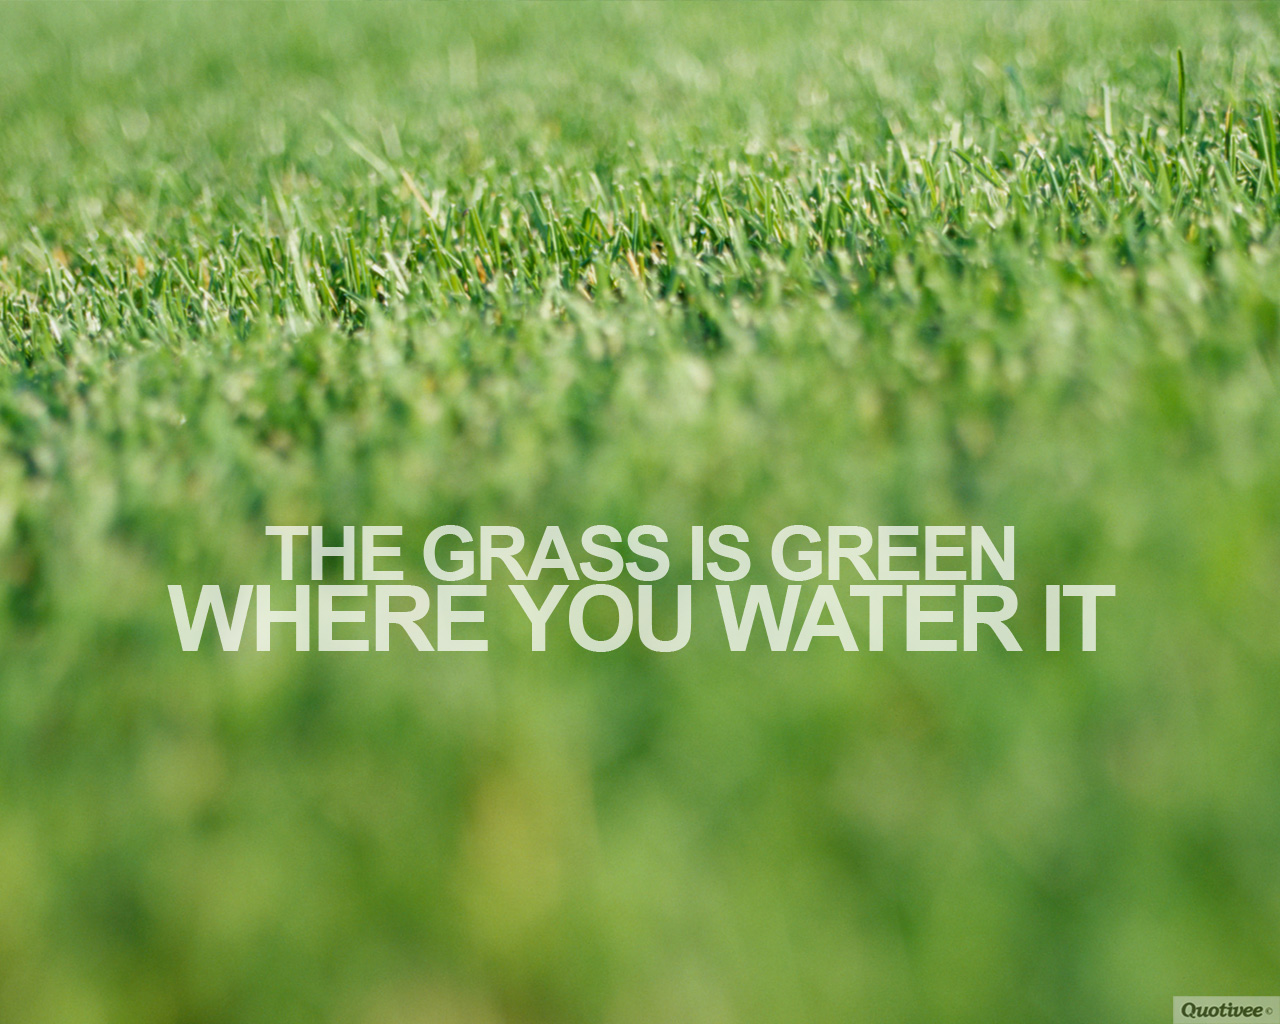 You Are My Life Quotes Wallpaper The Grass Is Green Inspirational Quotes Quotivee